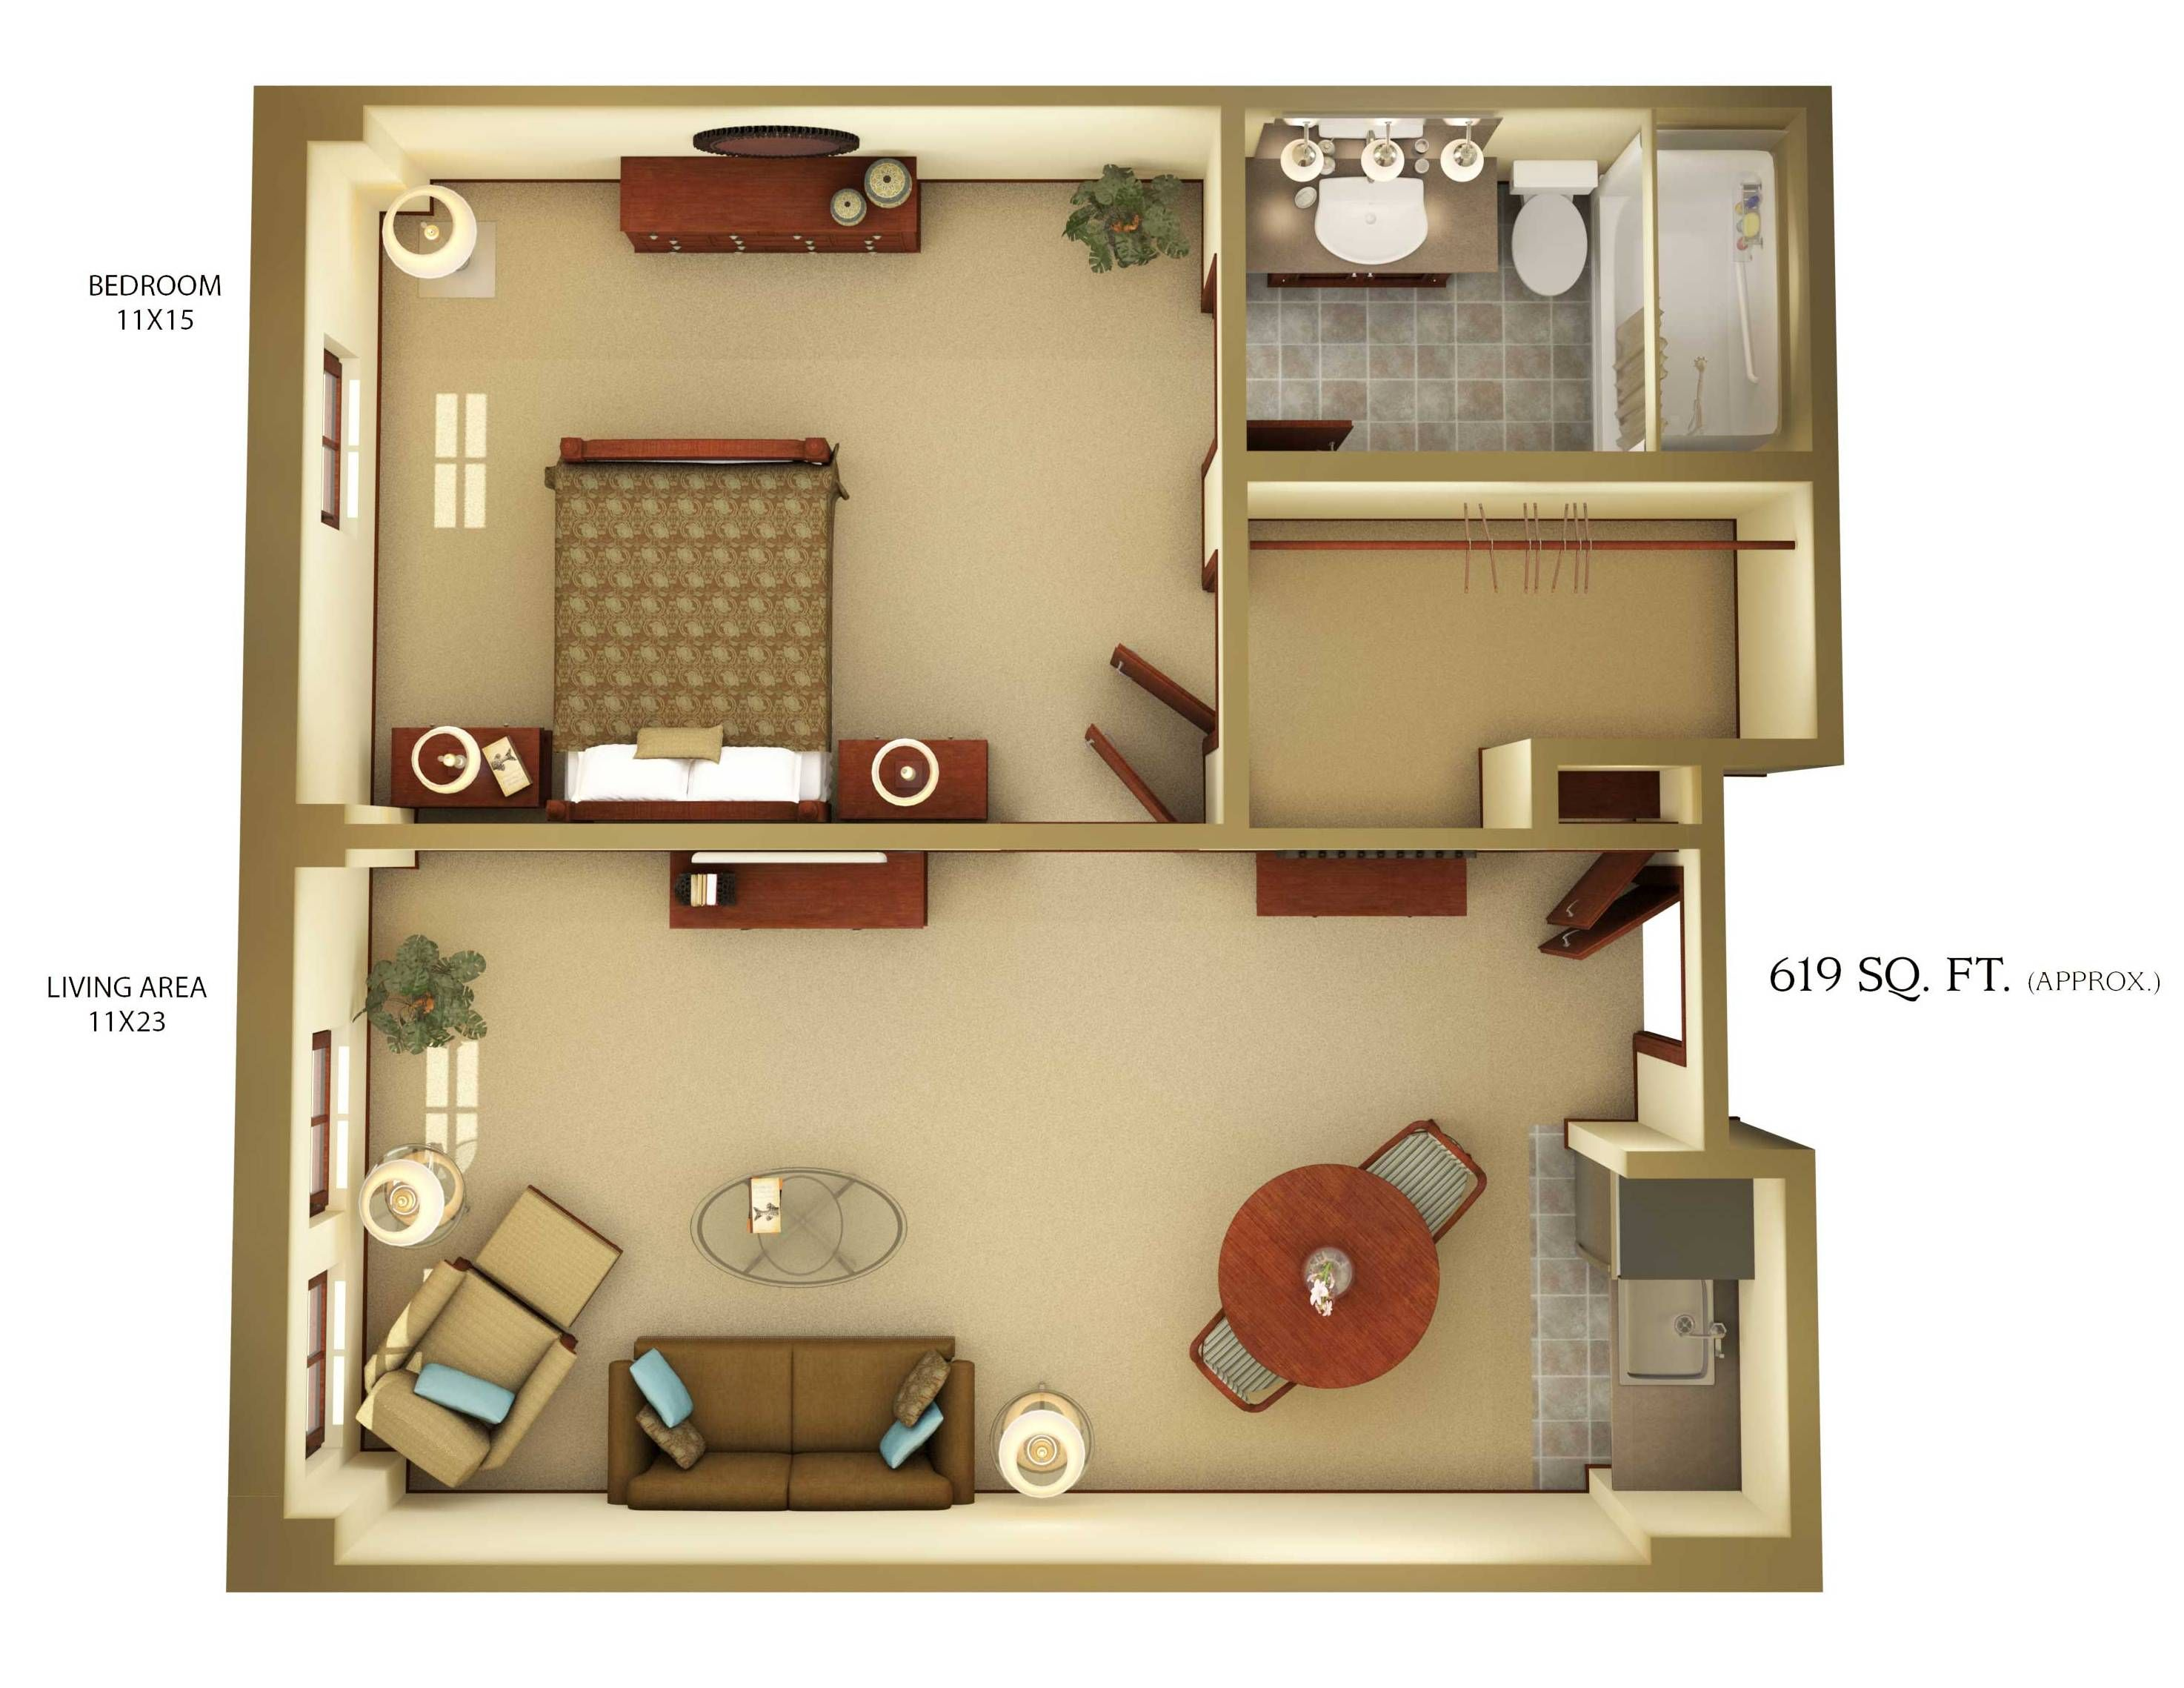 Studio Apartment Yahoo Answers 287 best small space floor plans images on pinterest | small